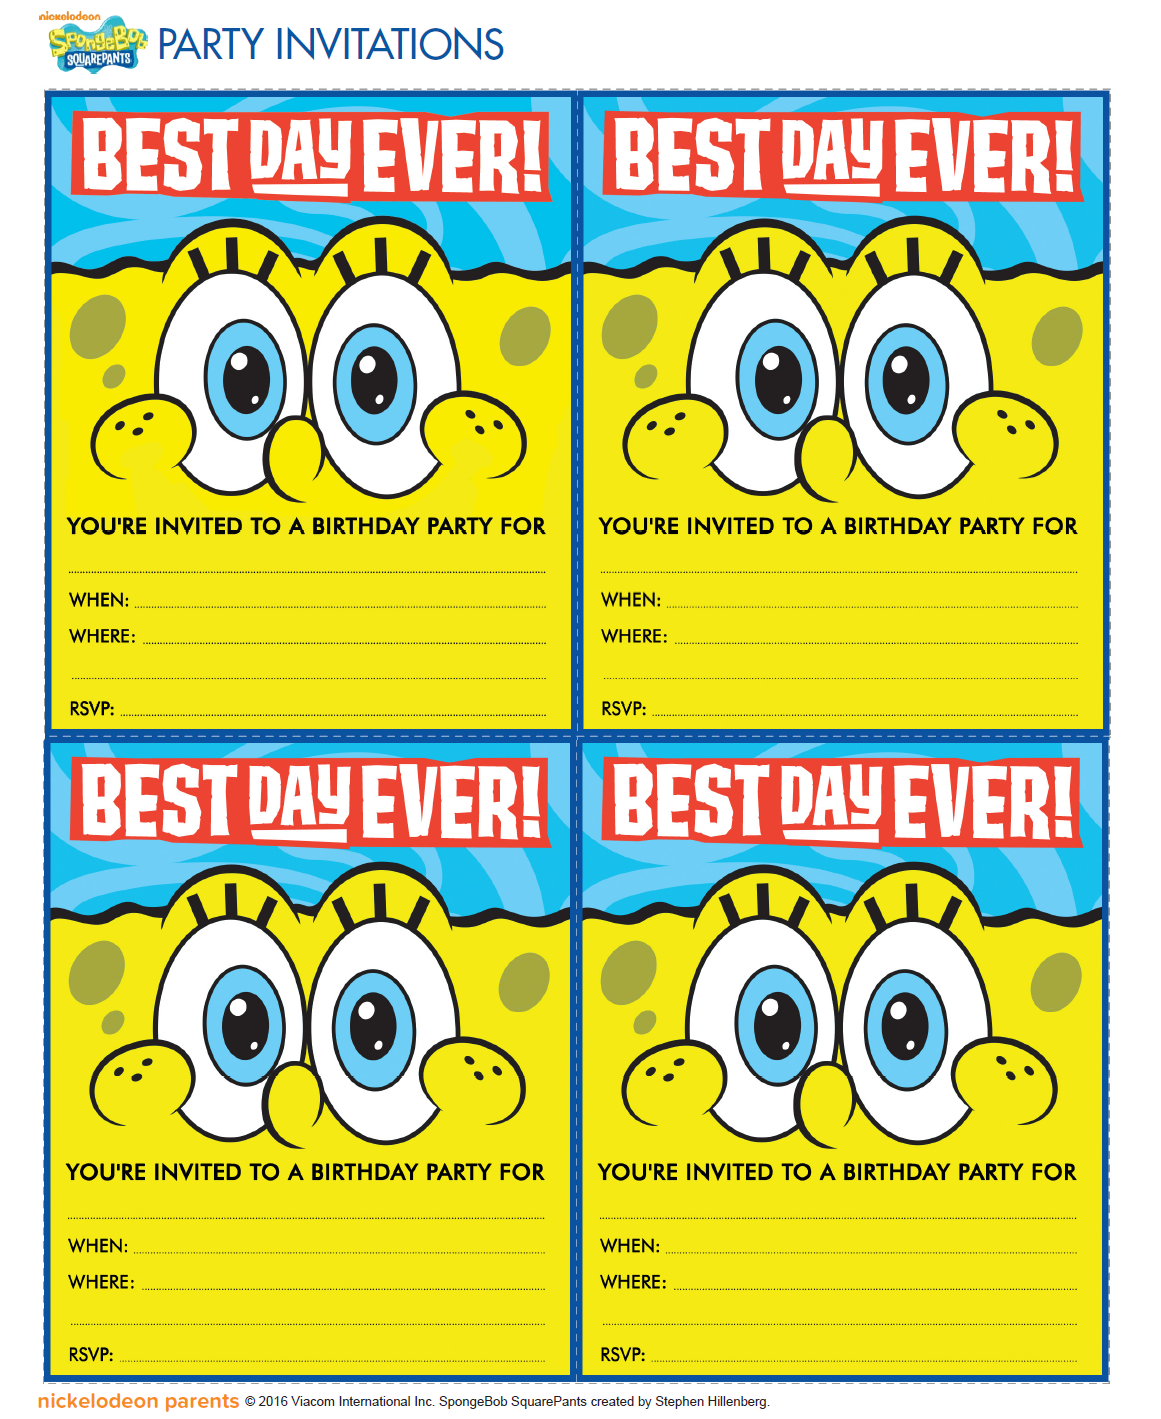 httpnickelodeonparentsspongebobbestdayeverparty – Spongebob Party Invitations